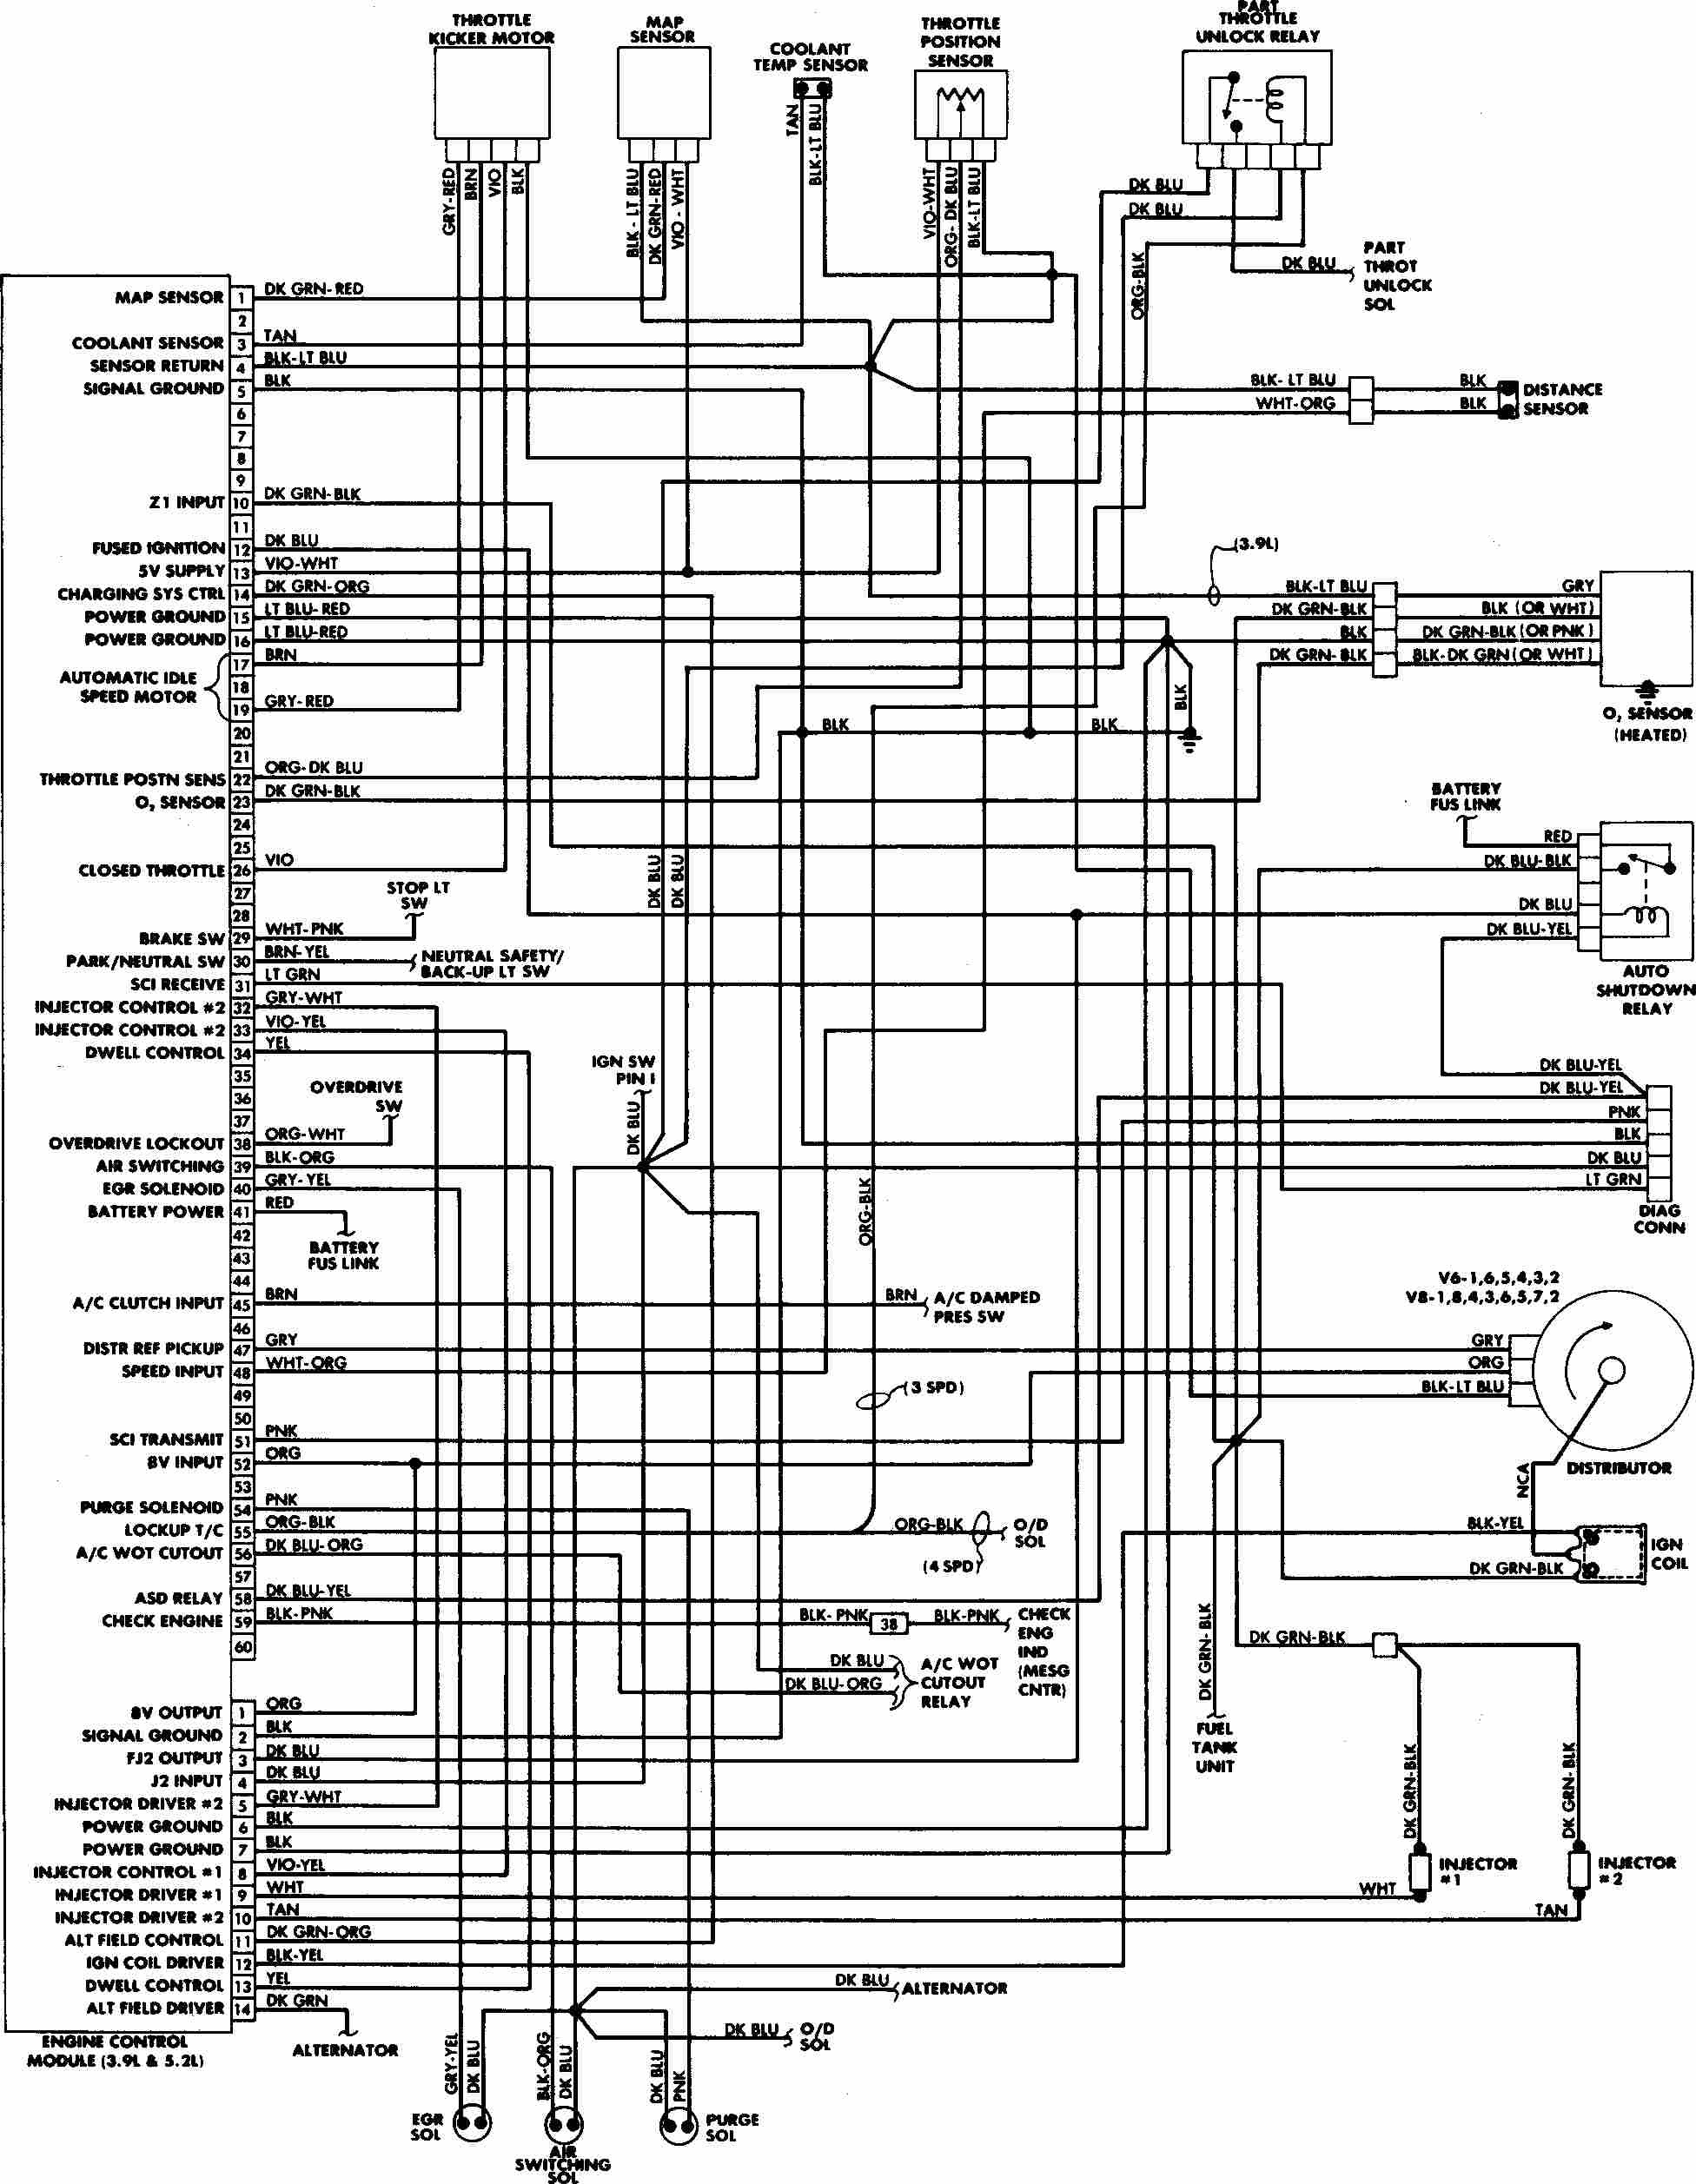 1998 Dodge Durango Engine Diagram Fuse Box As Ram Free Download 2003 Emissions Wiring Of